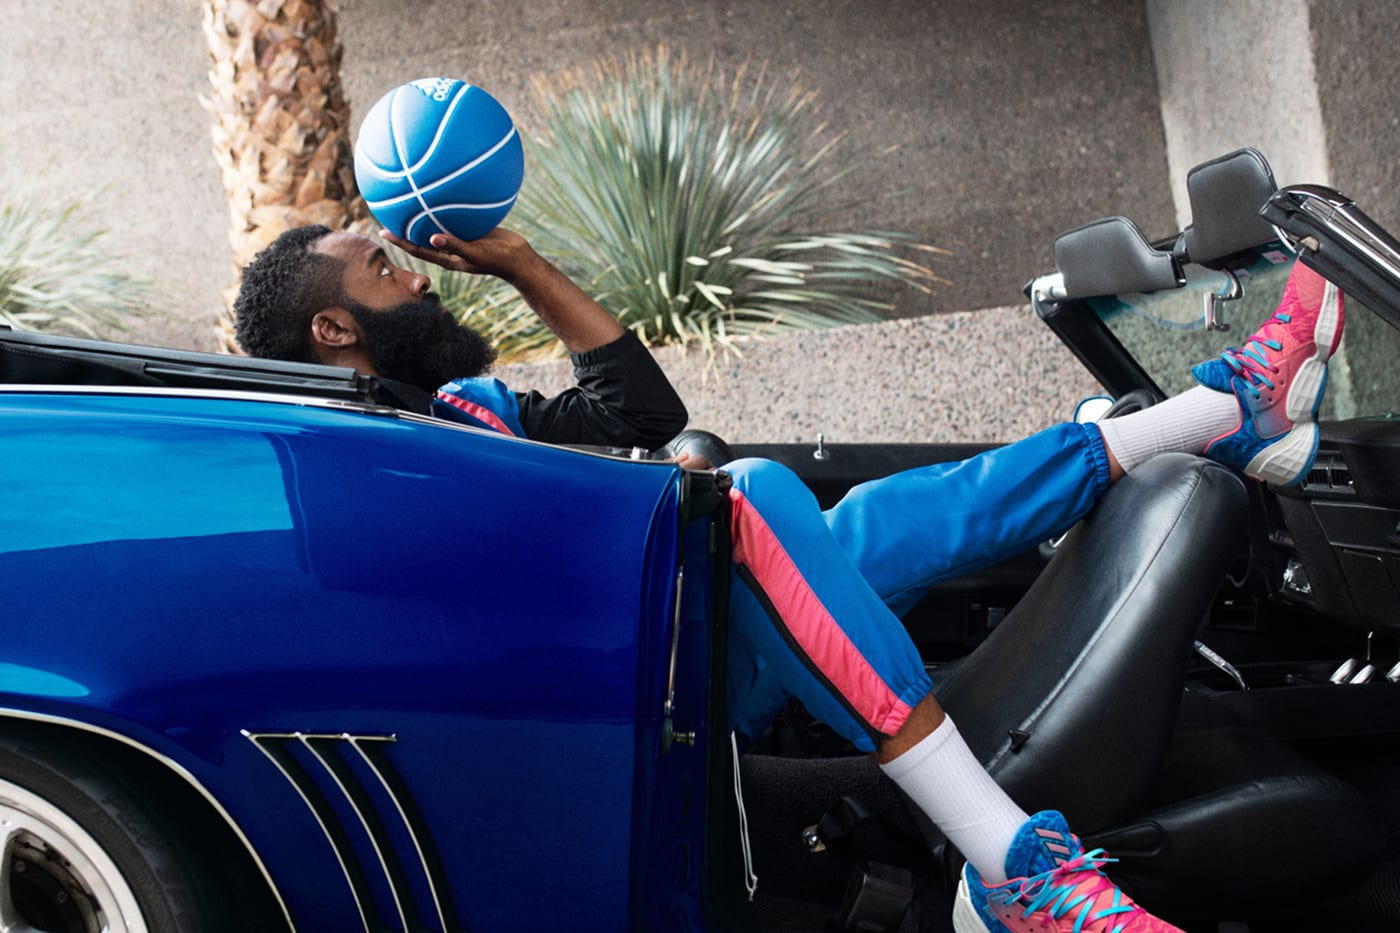 james-harden-adidas-vol-4-sneaker-daniel-patrick-streetwear-collection-release-3-1